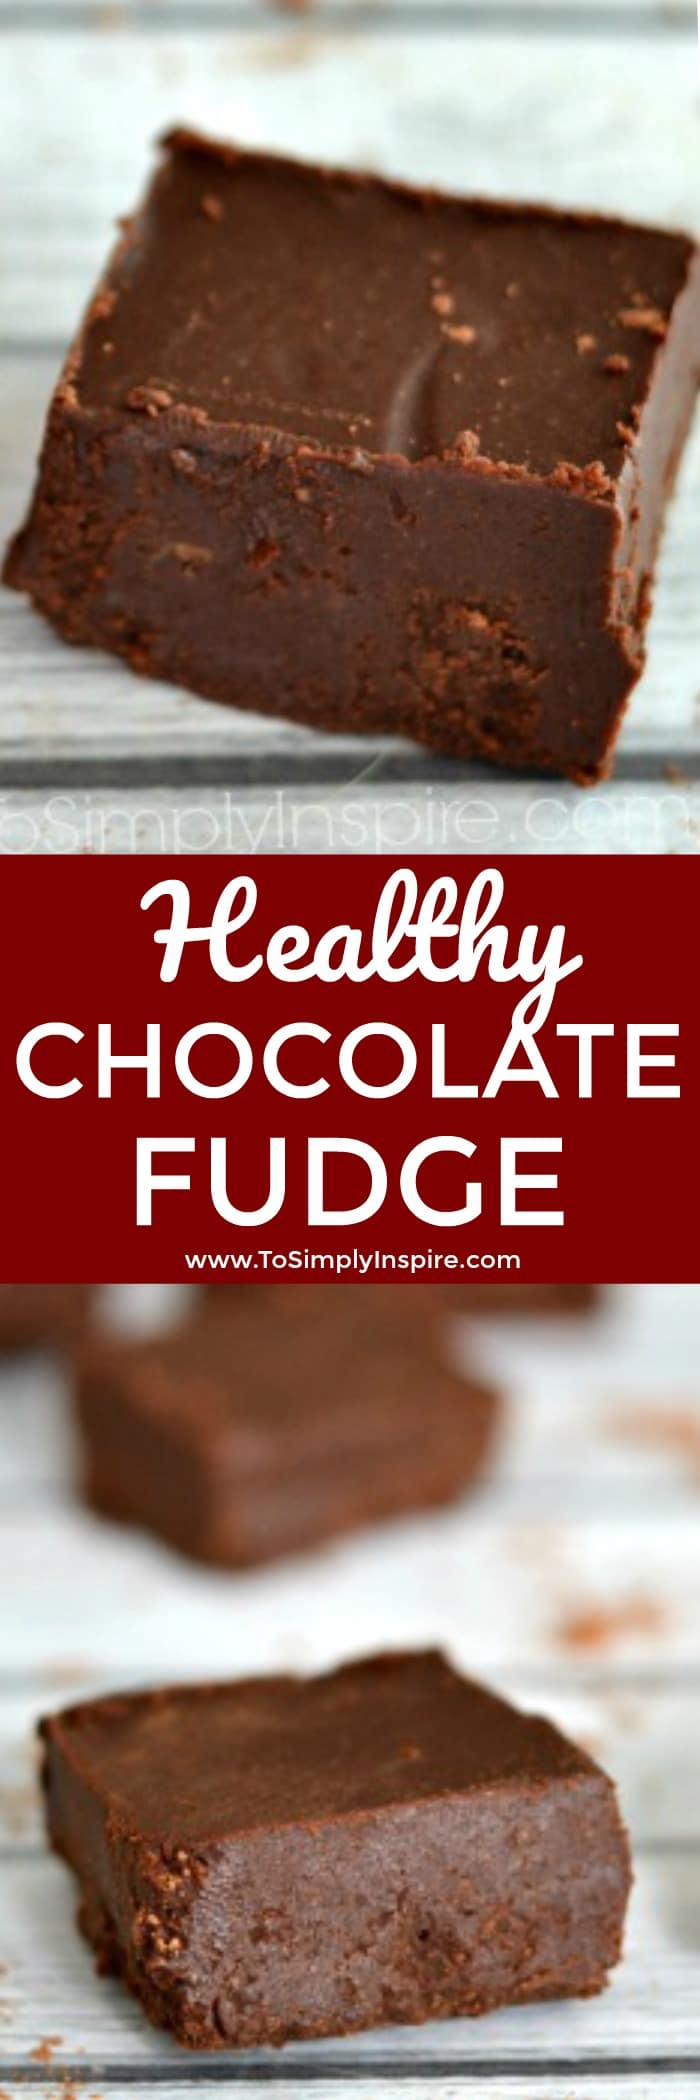 Made with just 4 ingredients, this healthy chocolate fudge is a creamy, mouth-watering delight. Gluten free, dairy free and no refined sugar.